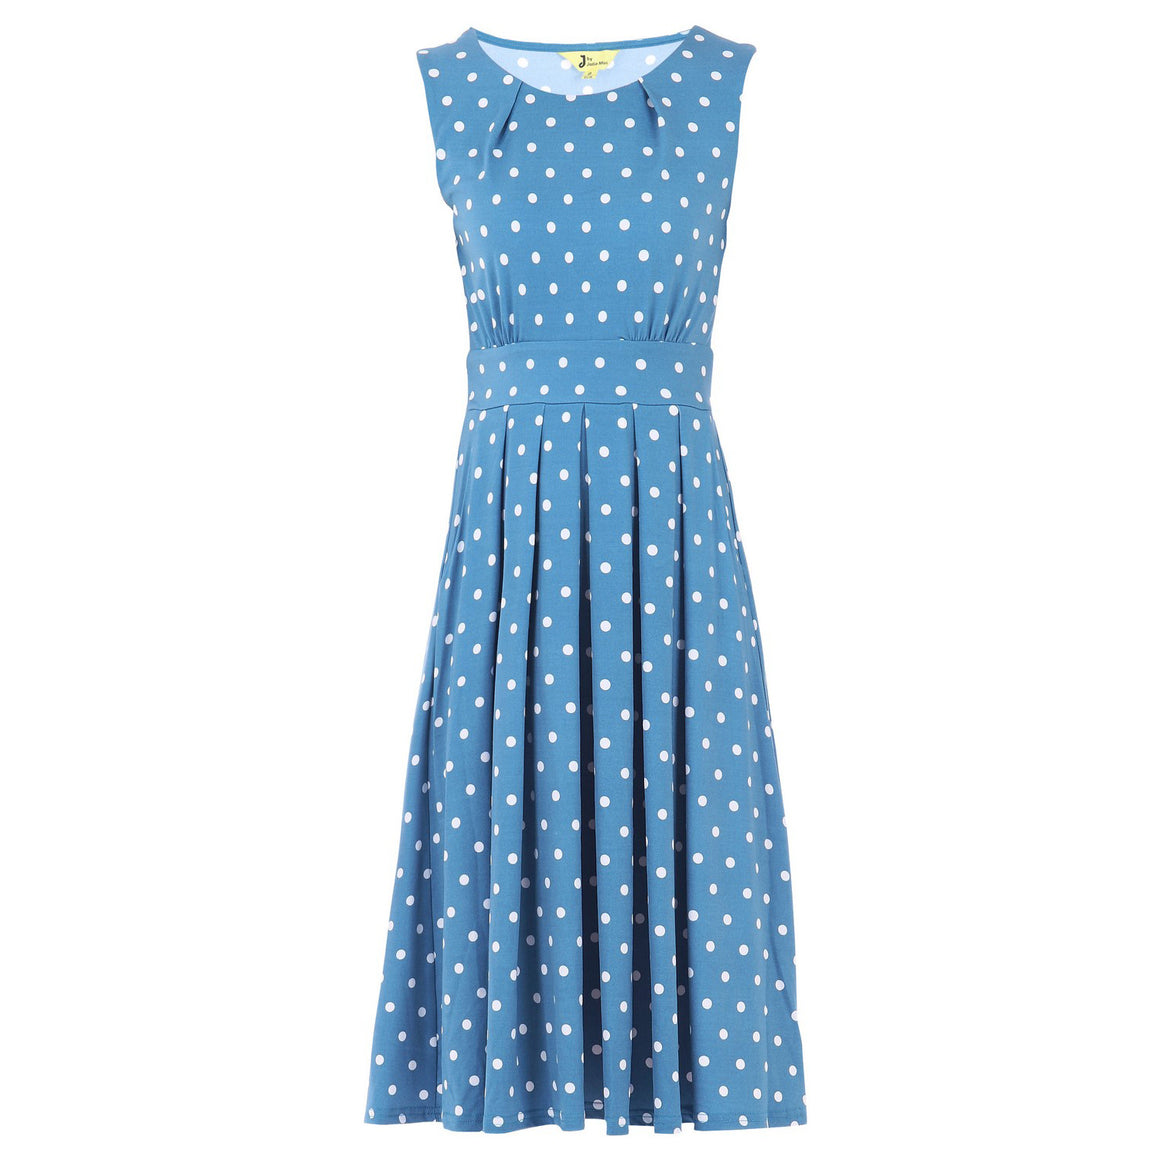 Jolie Moi Blue And White Polka Dot Round Neck Midi Dress - Pretty Kitty Fashion